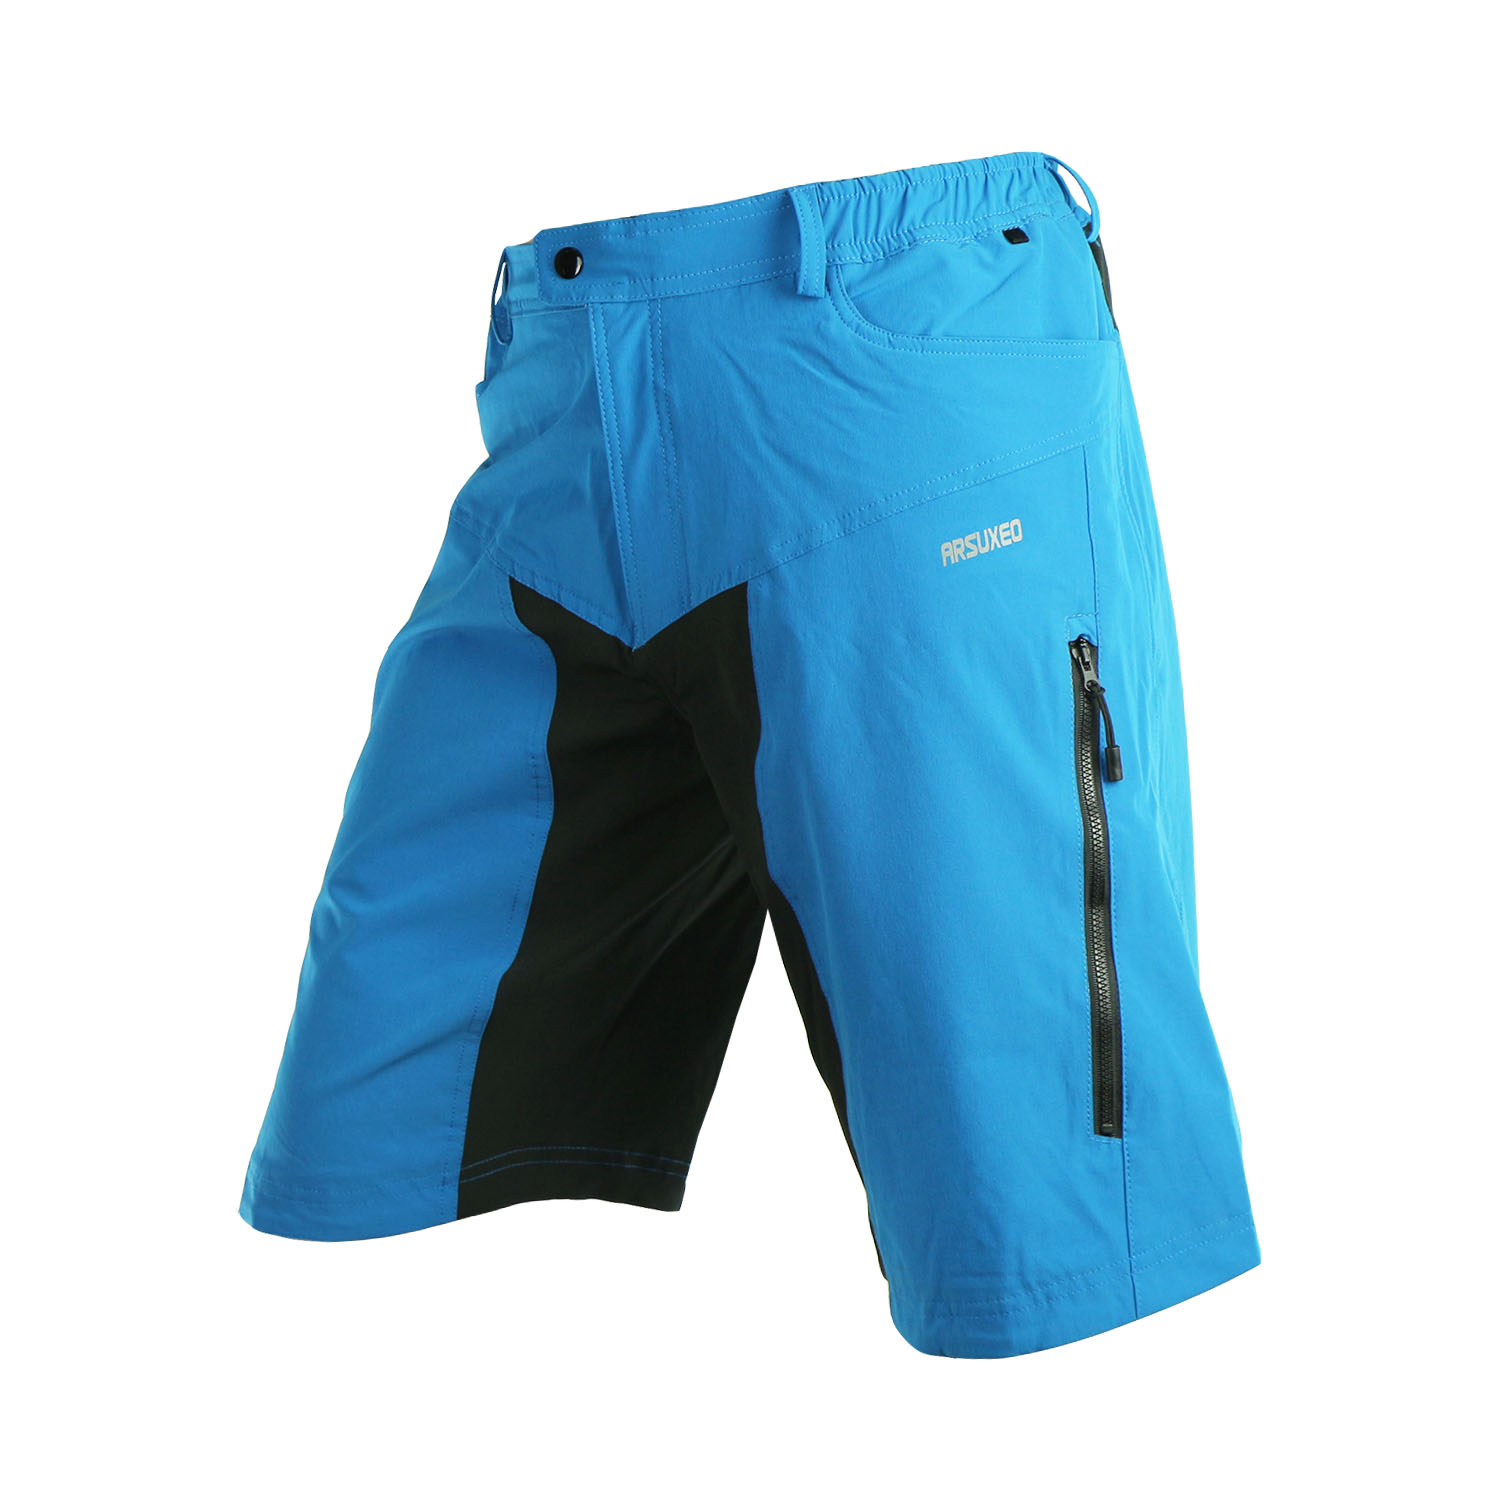 ARSUXEO Mens Sports Riding Short Pants Cycling Bike Bicycle Shorts Trousers<br><br>Aliexpress